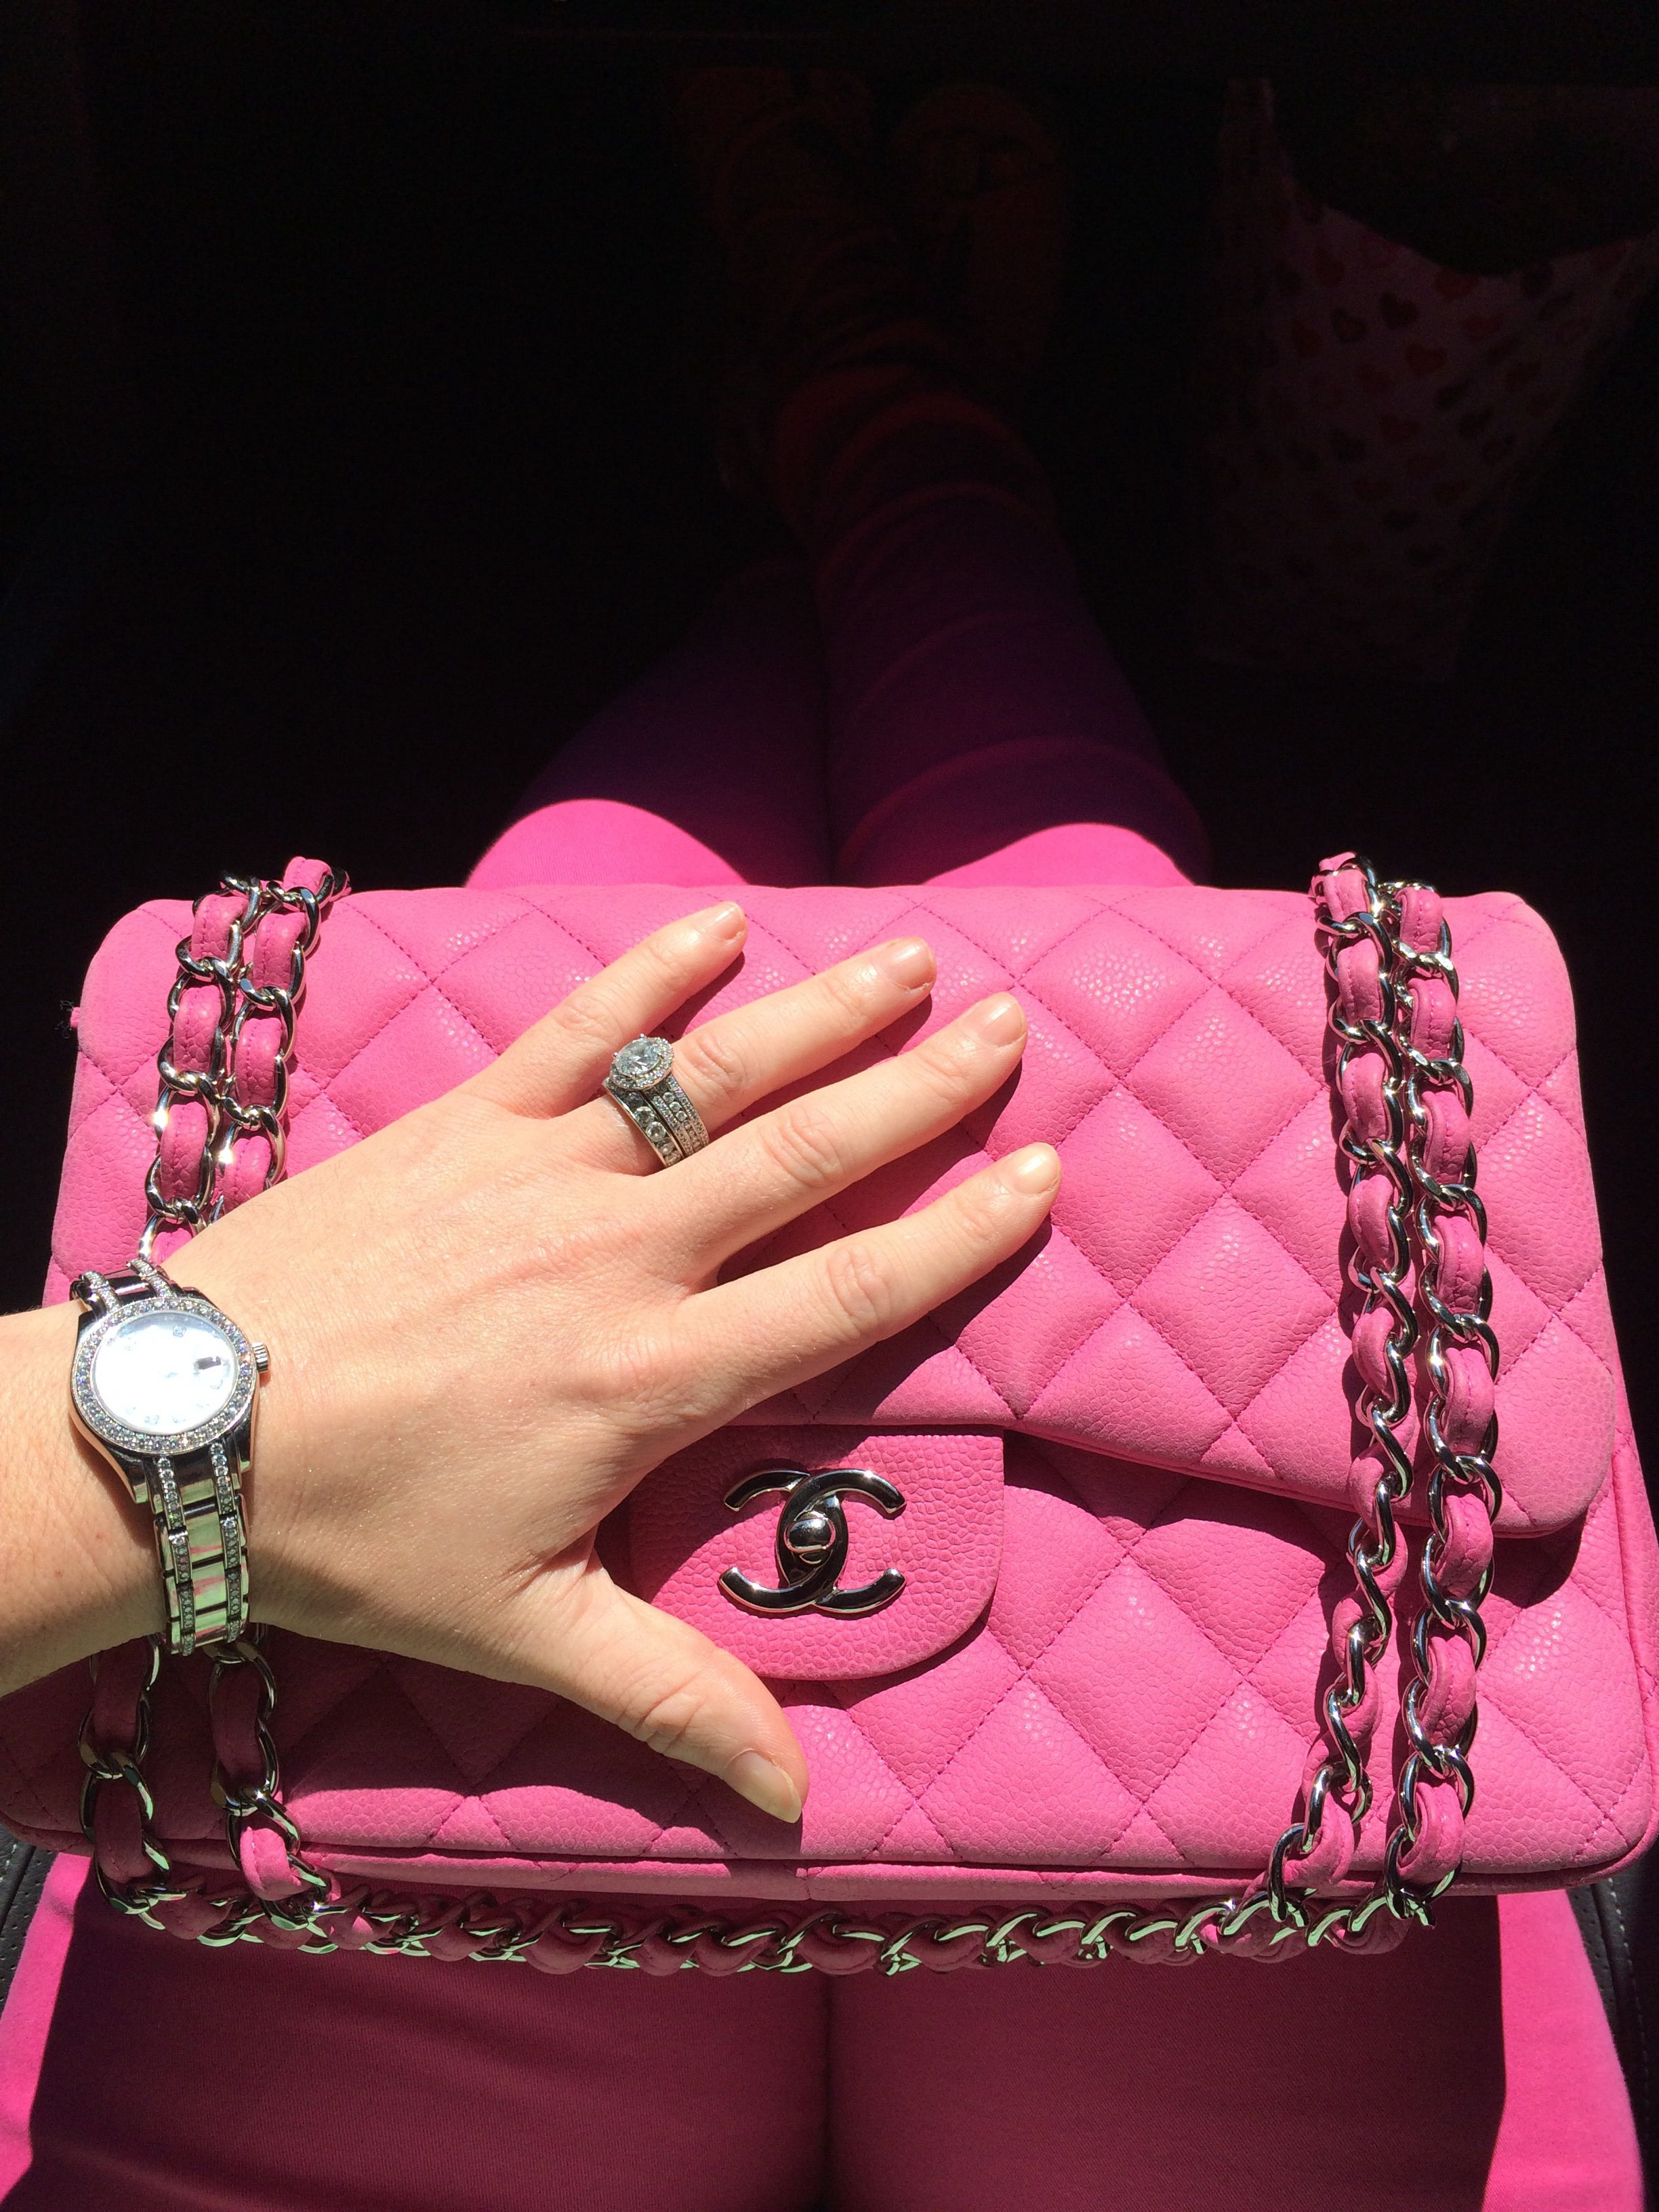 6368fe6f99c Hot Pink Chanel Classic Jumbo Flap Pink Chanel Bag